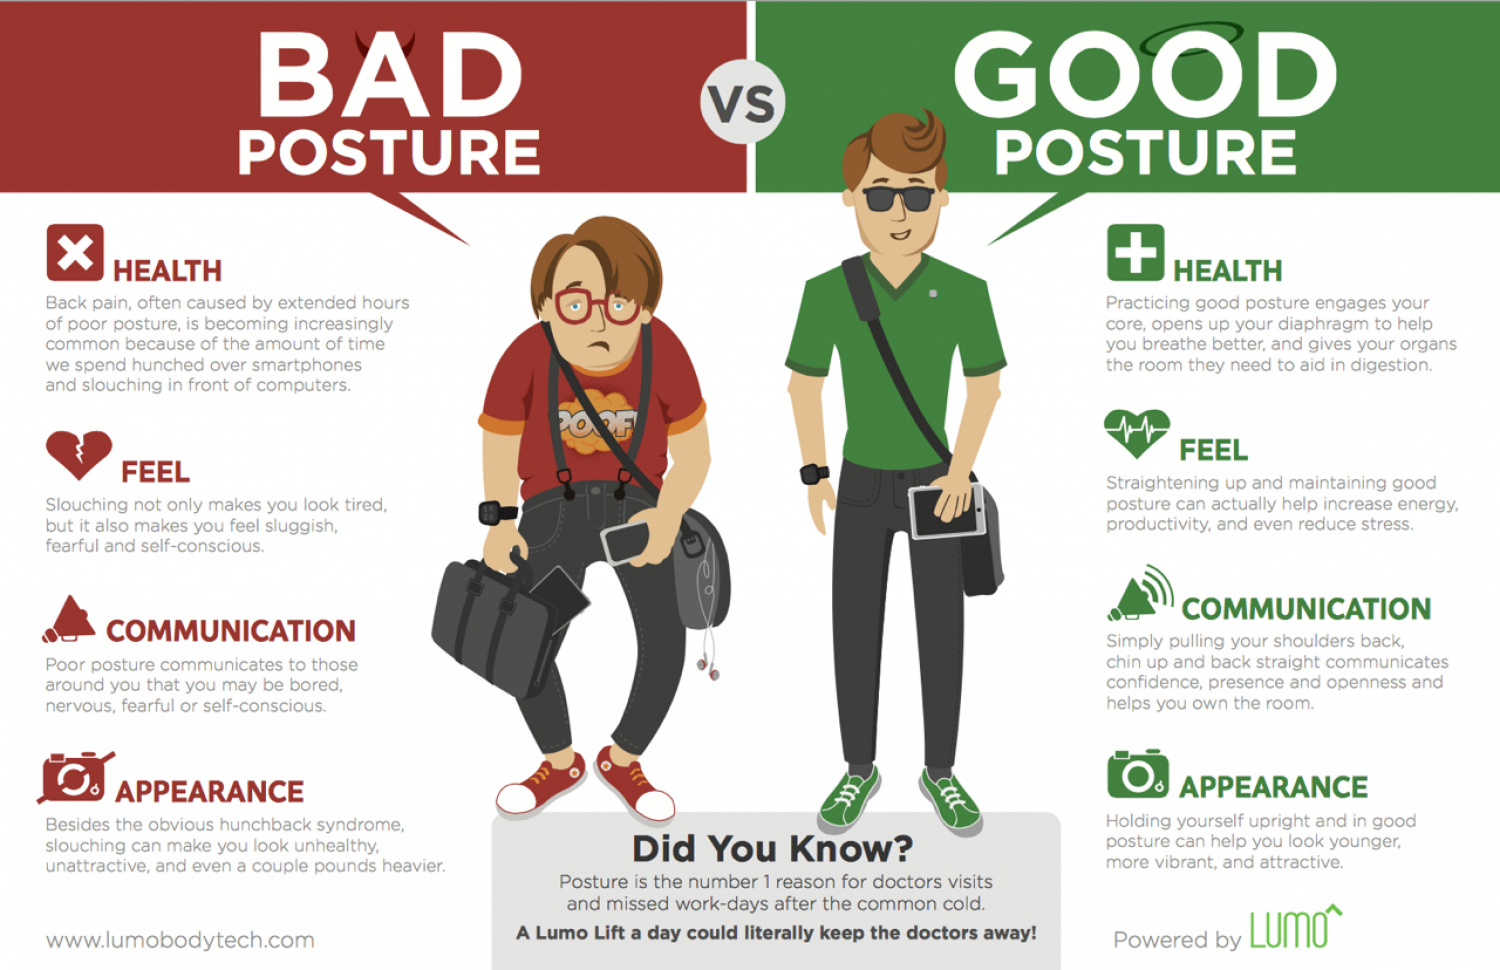 How to keep the correct posture